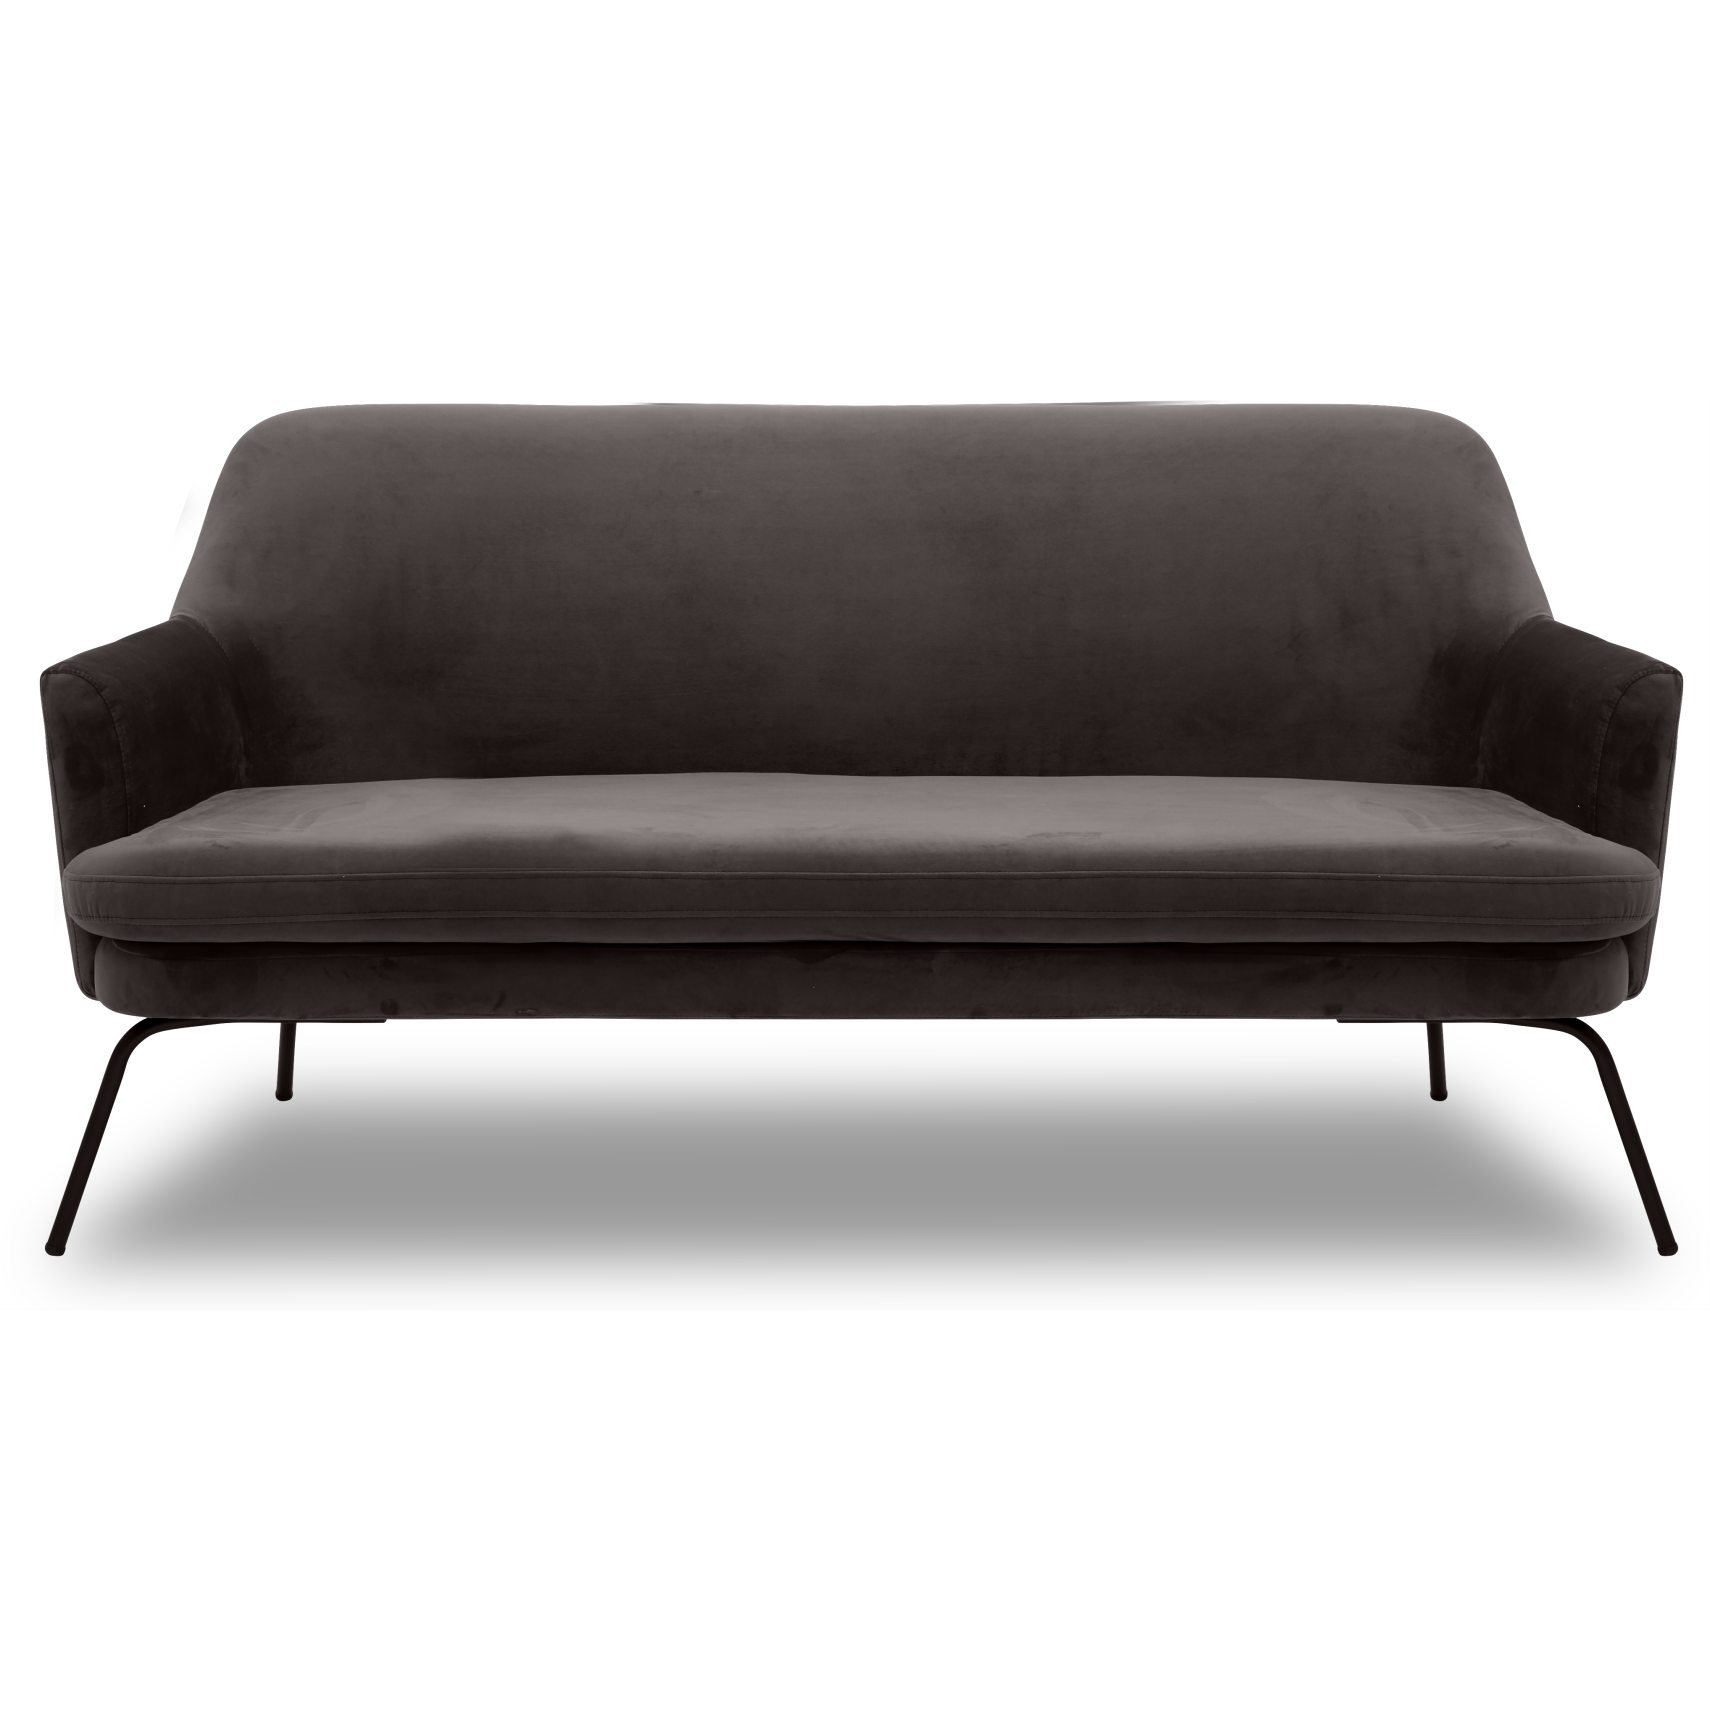 Chisa Sofa - Vic Warm Earth stof og med stel i sort metal